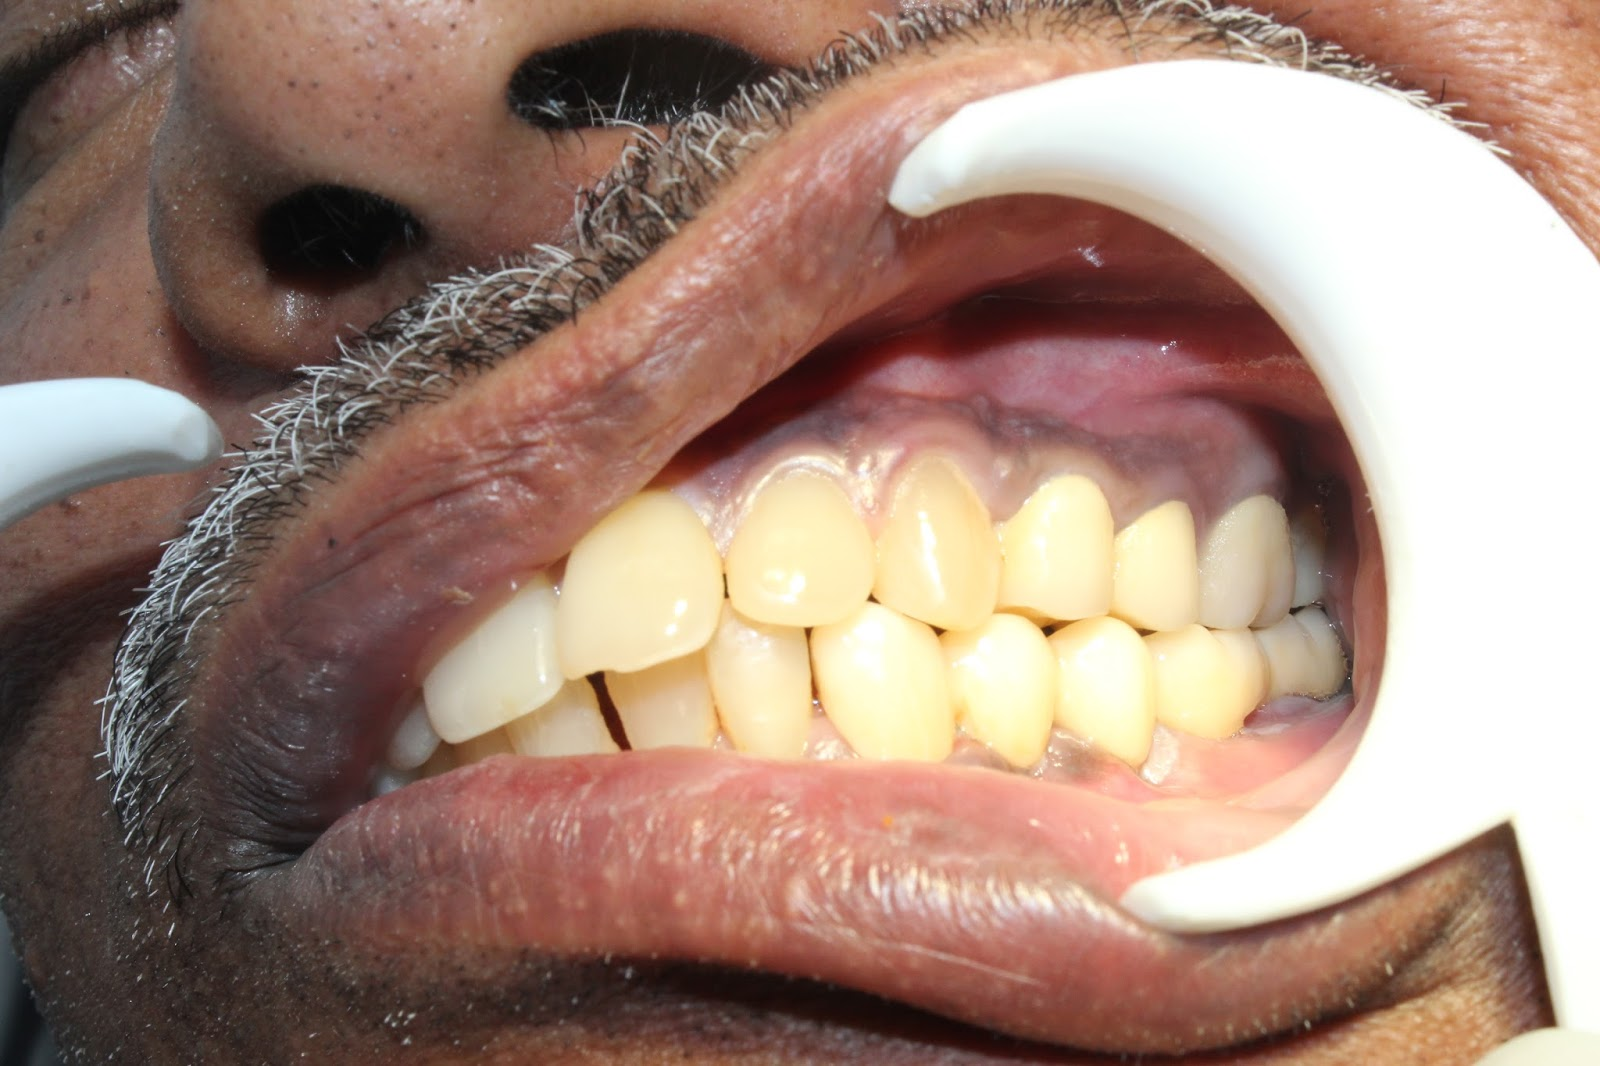 Zirconium Bridges For Teeth Replacement With Dental Implants